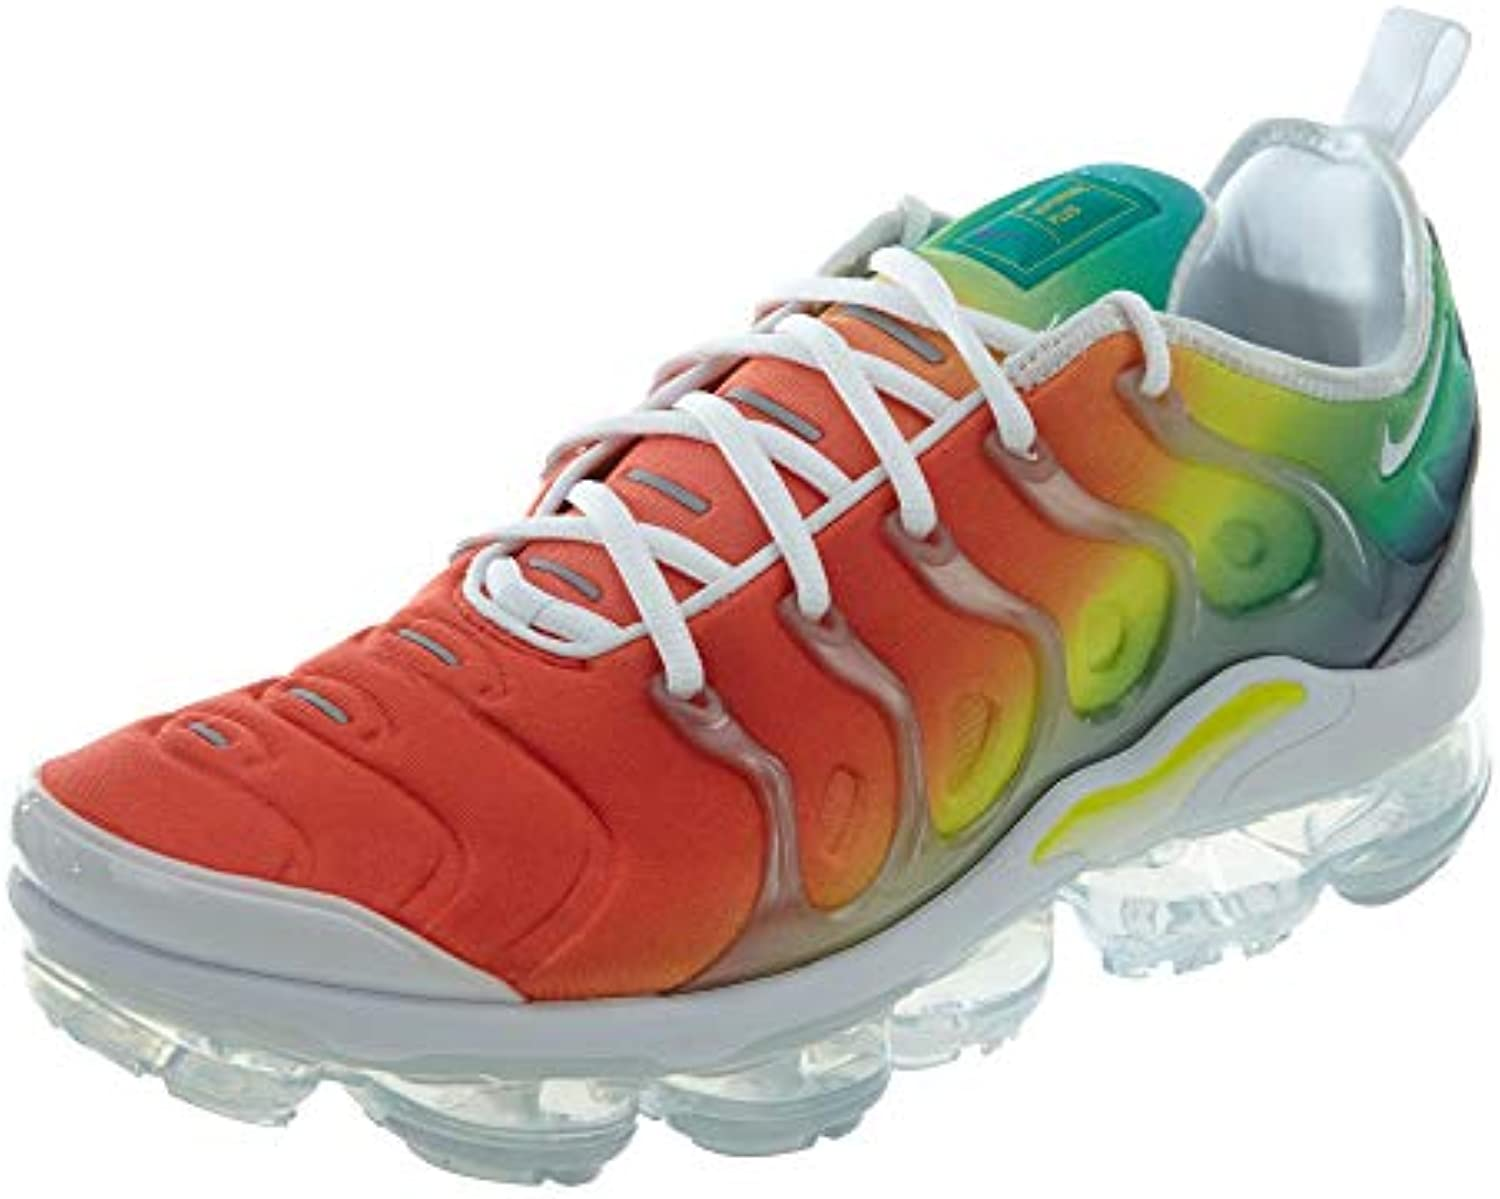 NIKE NIKE NIKE Men's Air Vapormax Plus Shoe White/Green/Yellow B07BDRH4TX Parent 69b31d